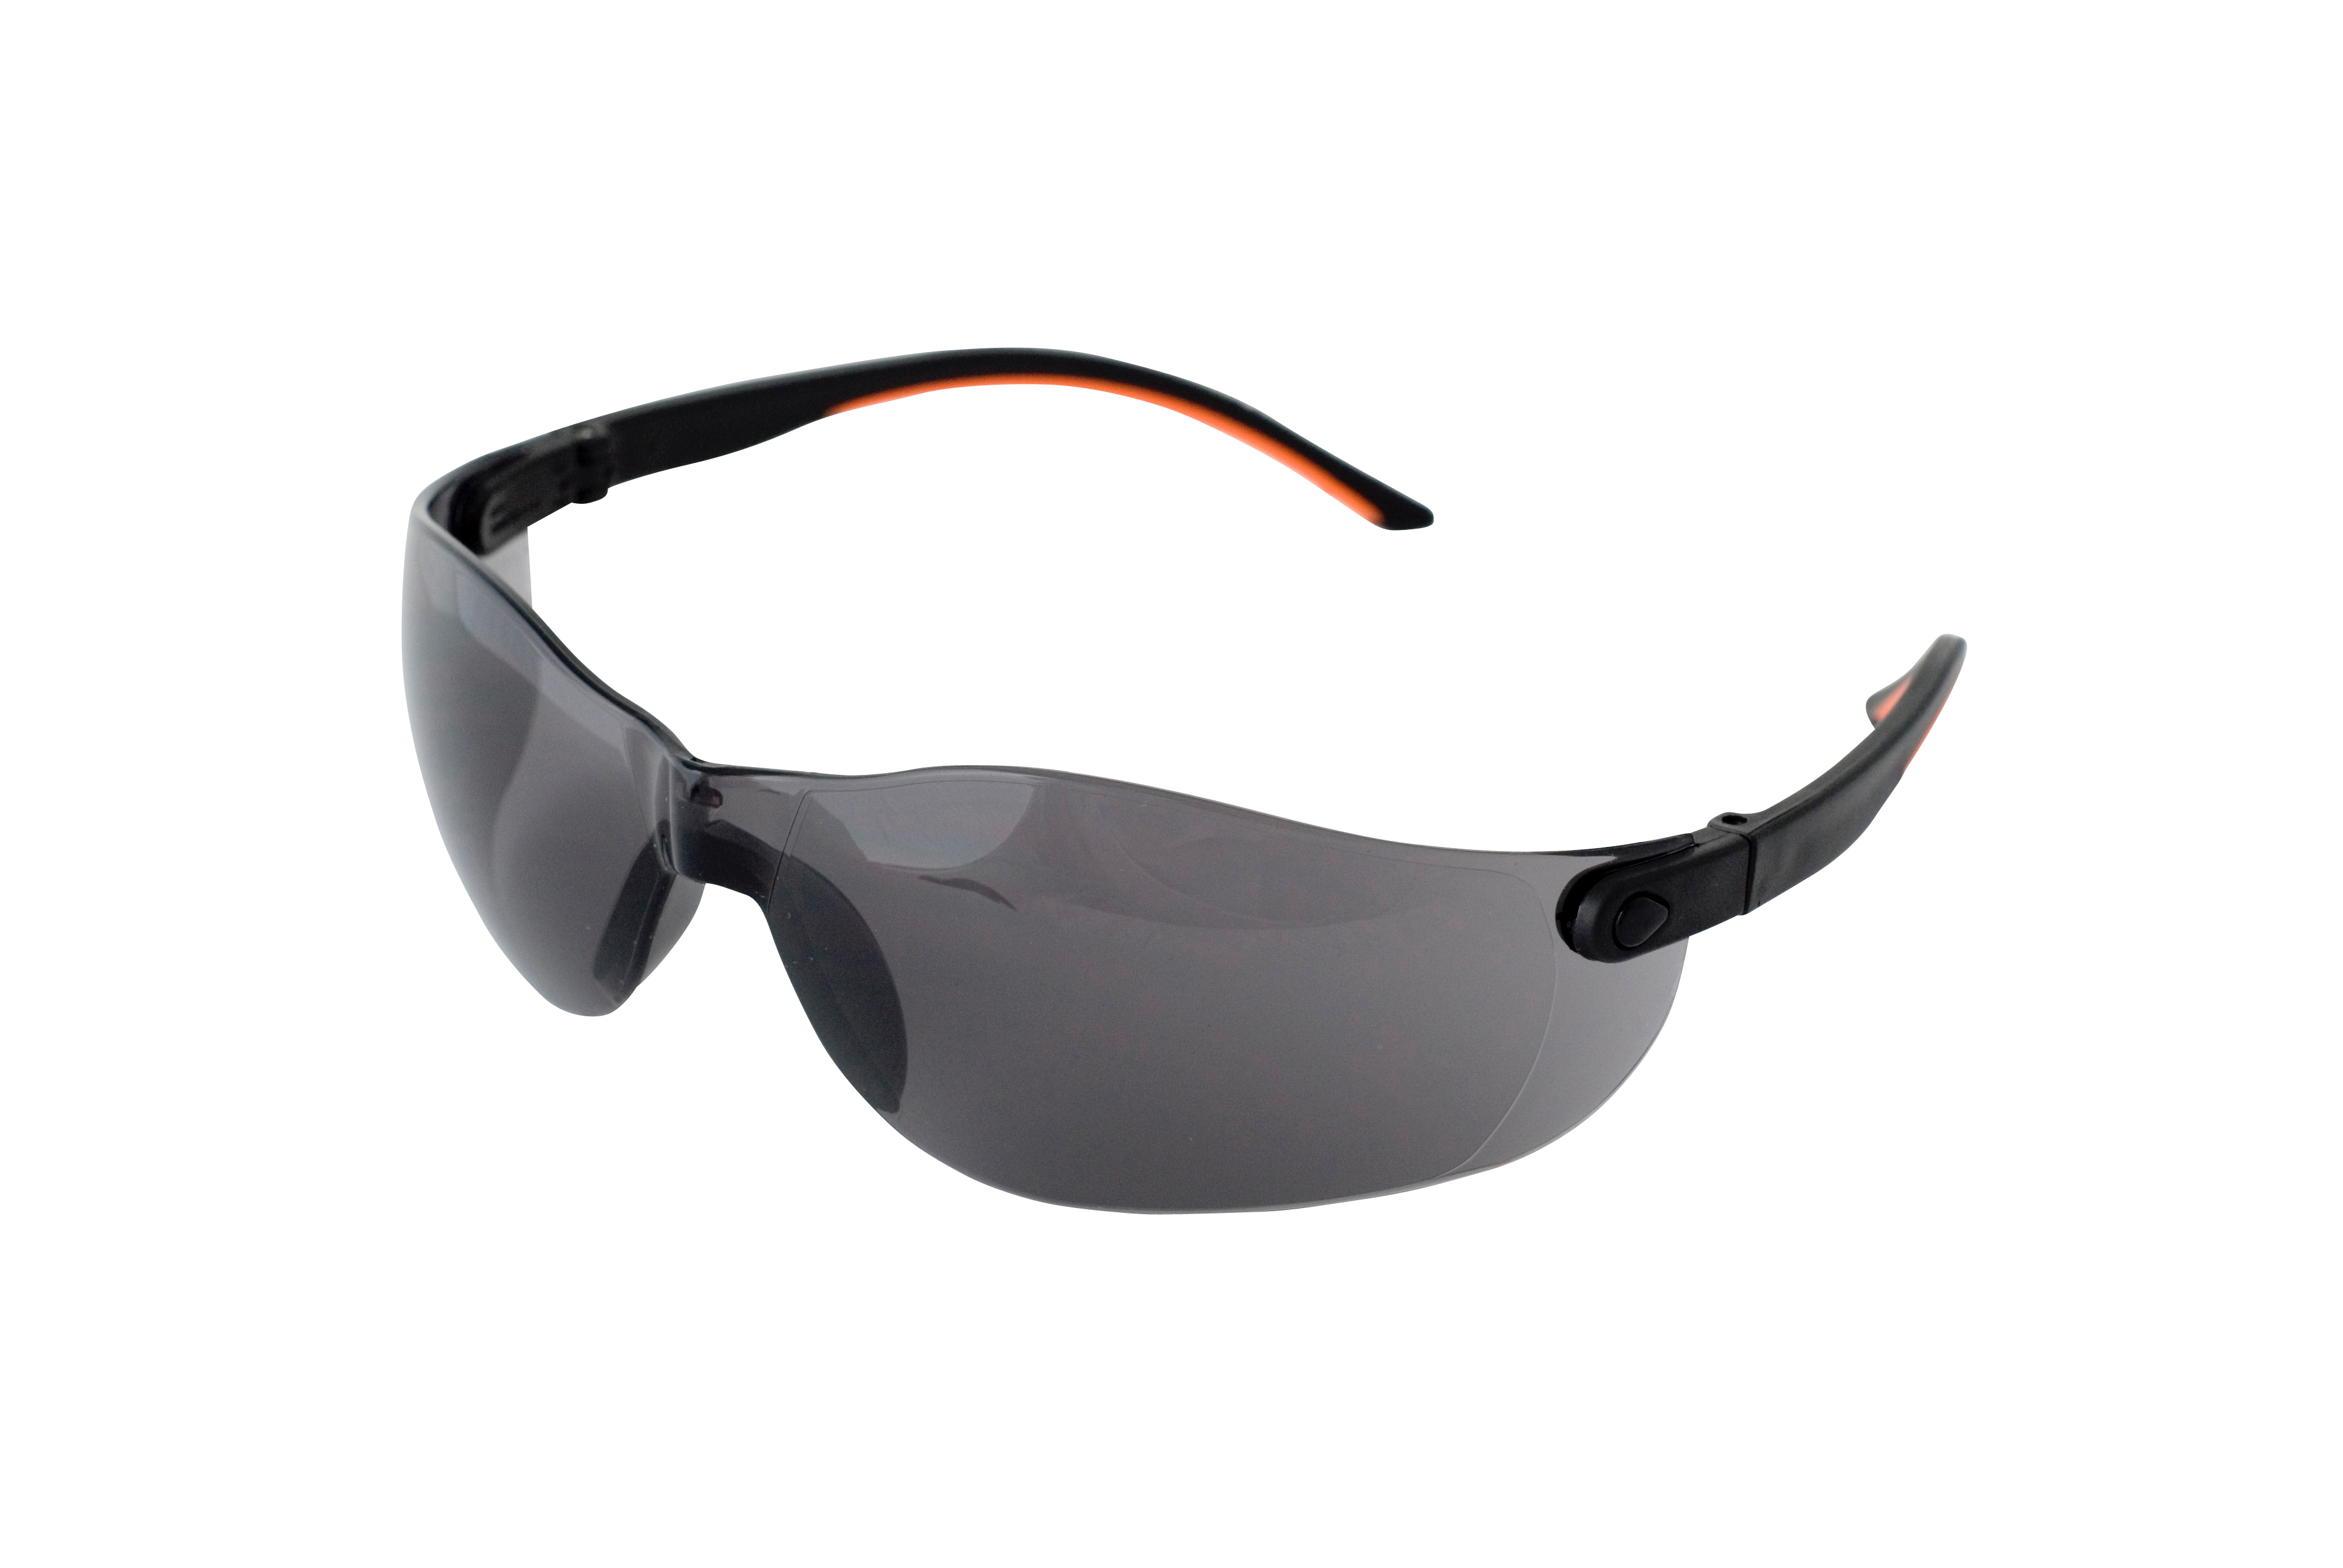 Betafit MONTANA Anti Scratch, Anti Fog Lens Safety Spectacles